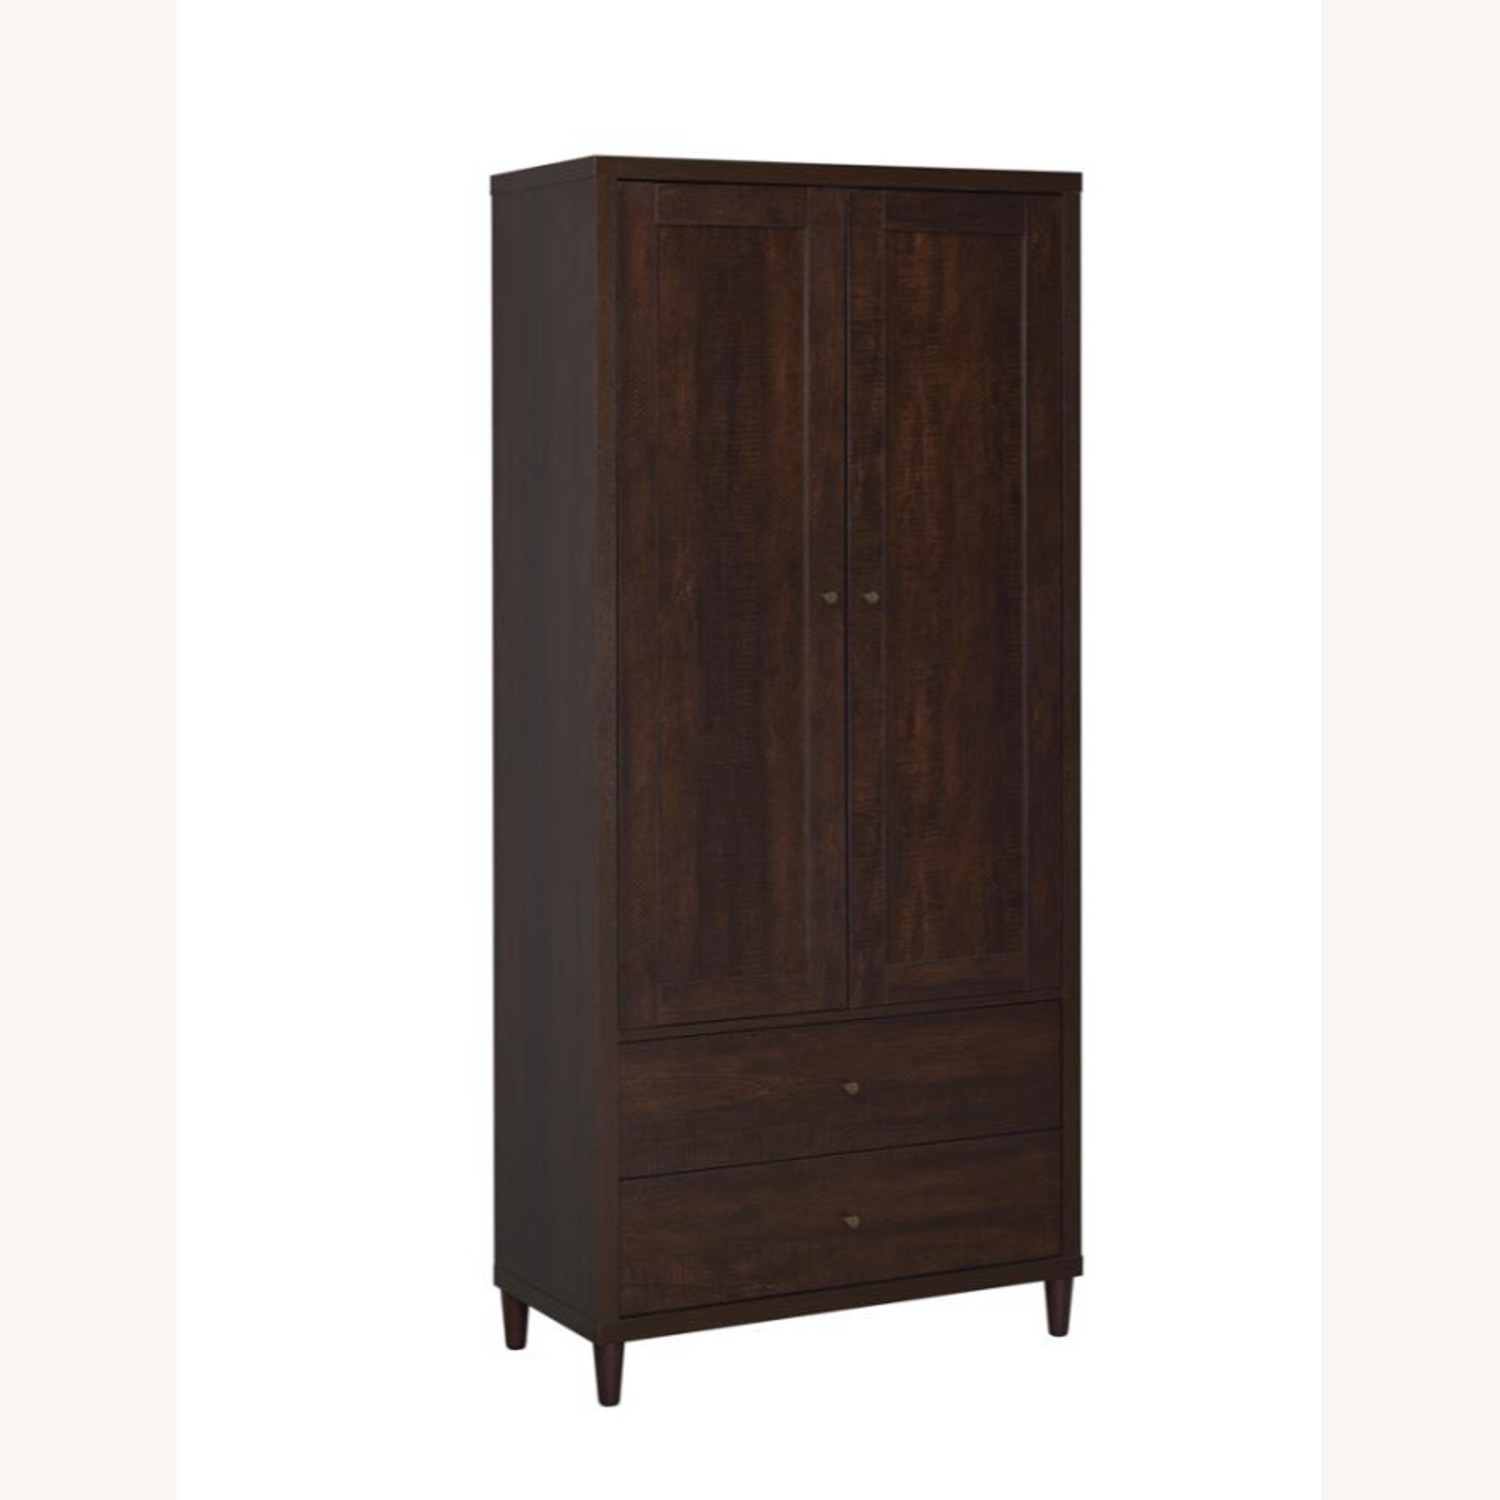 Accent Cabinet In Rich Rustic Tobacco Finish - image-0